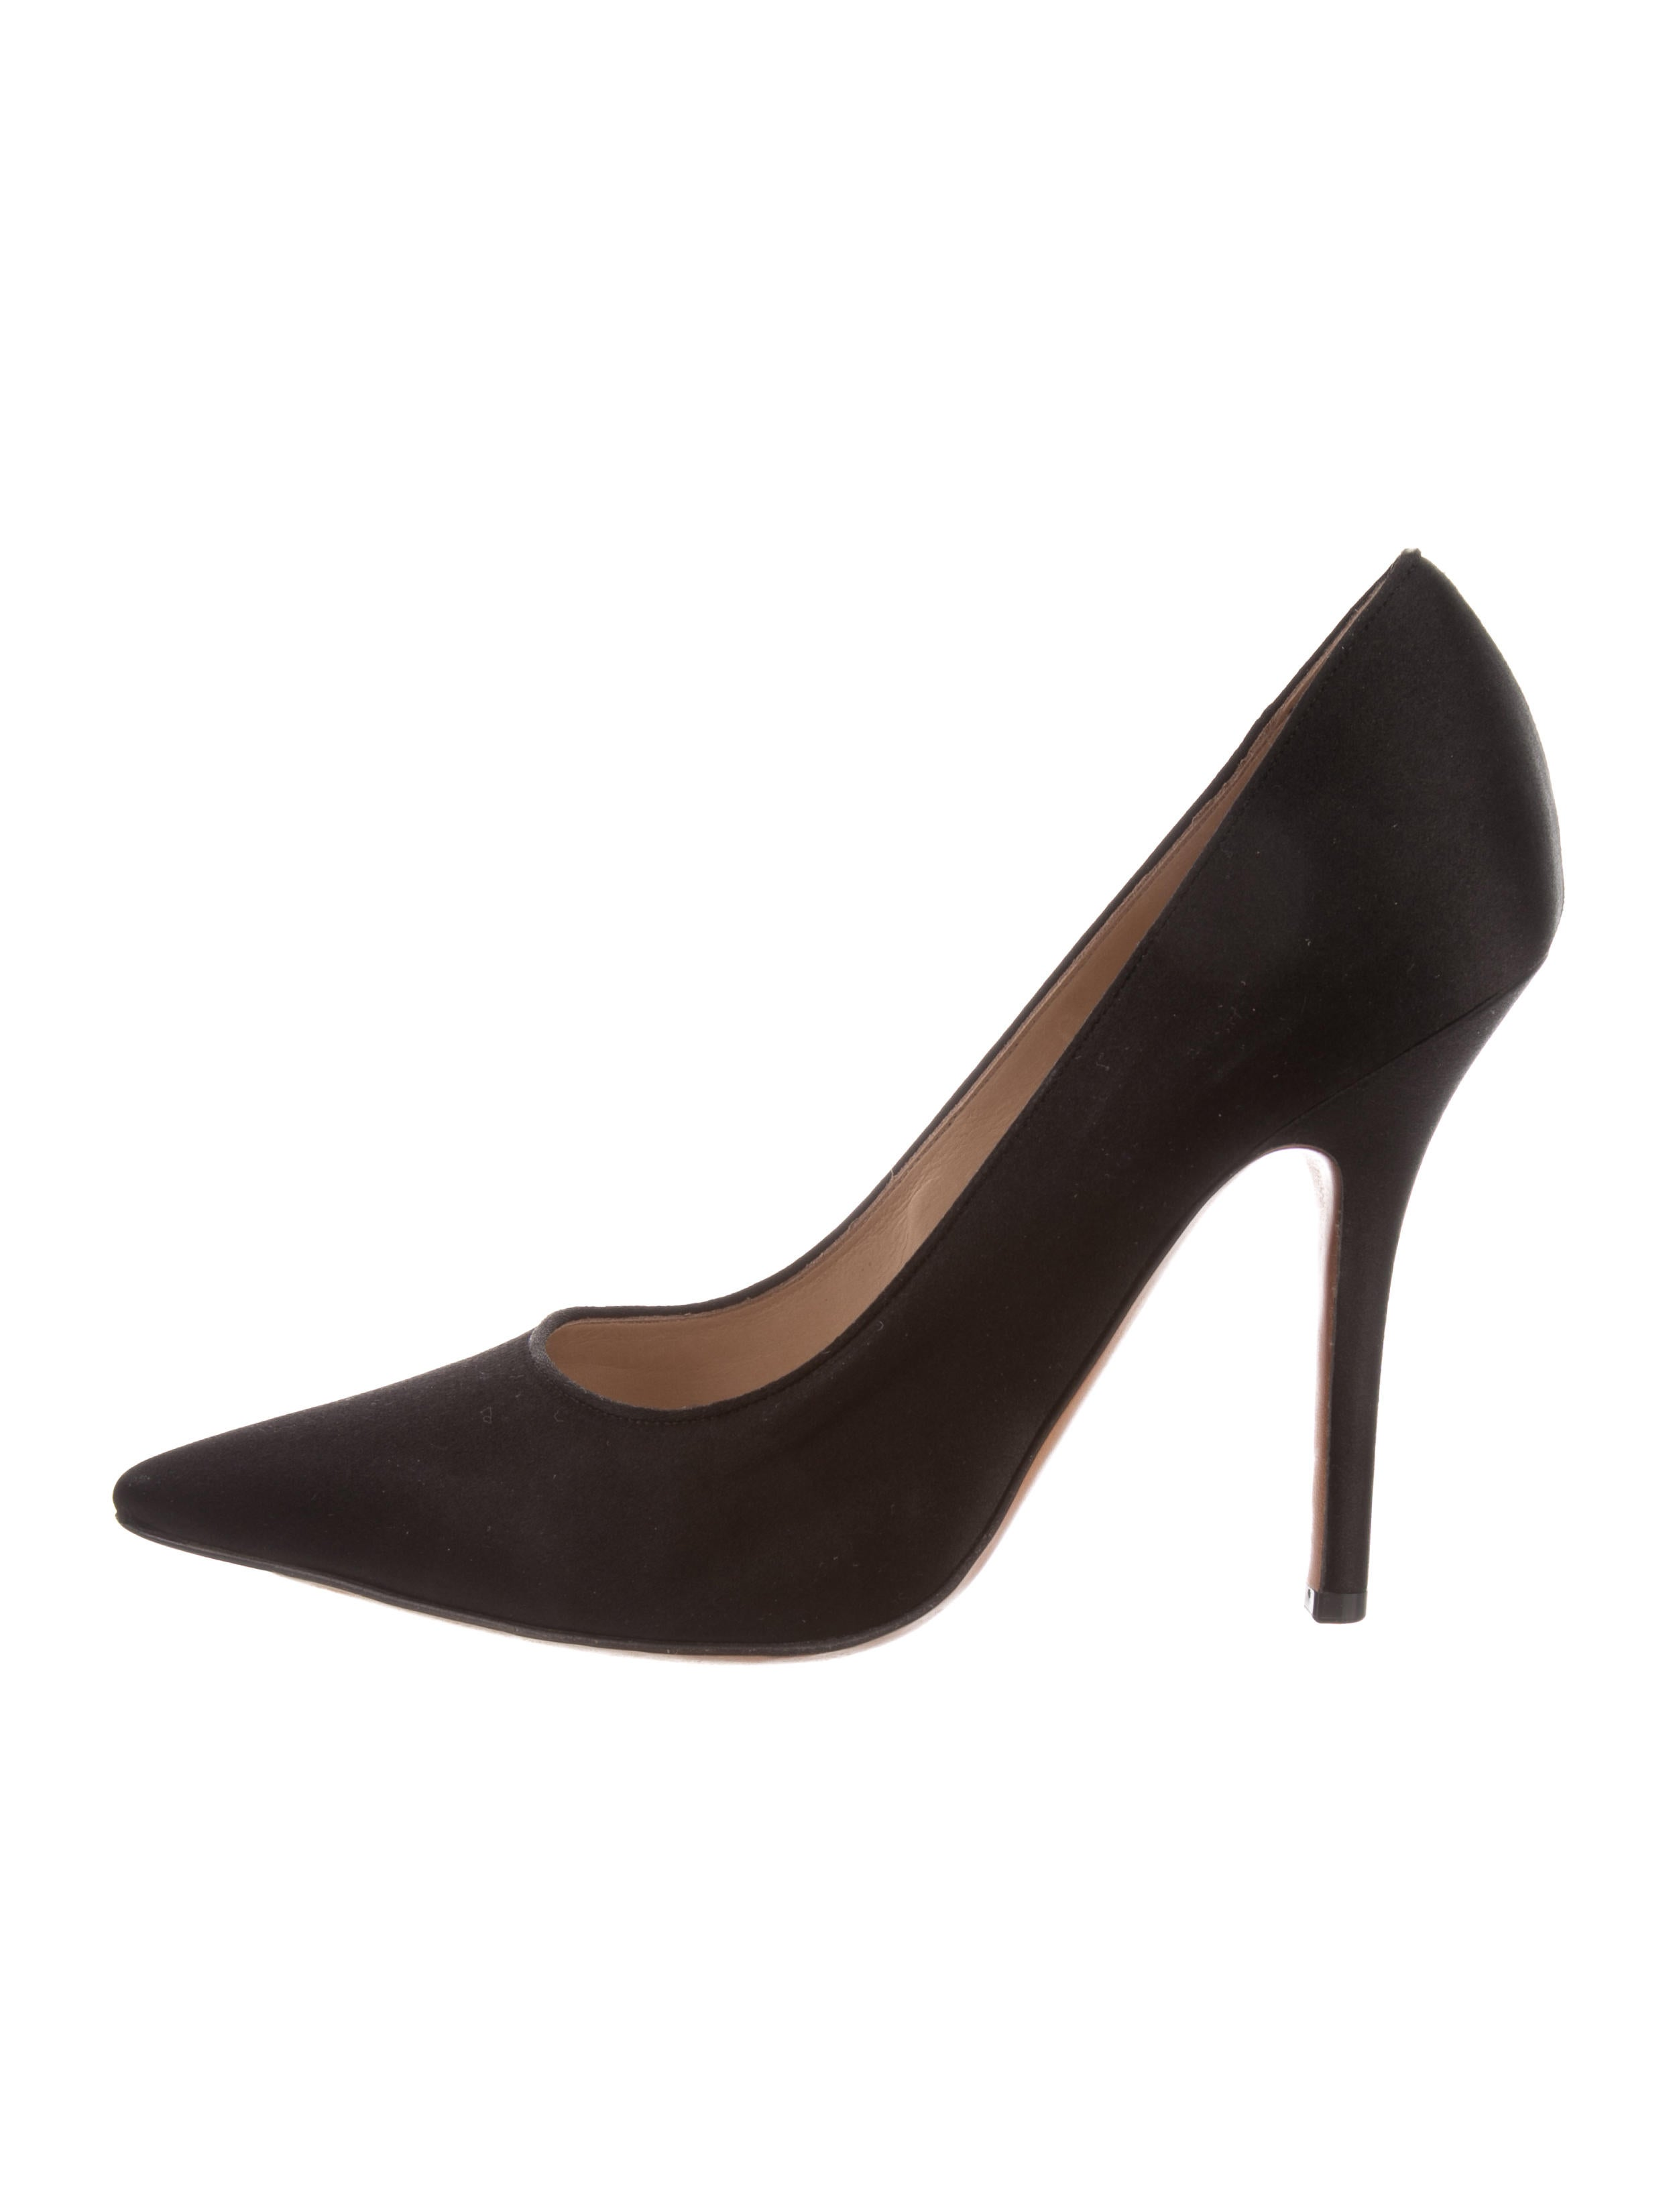 Céline Pointed-Toe Satin Pumps